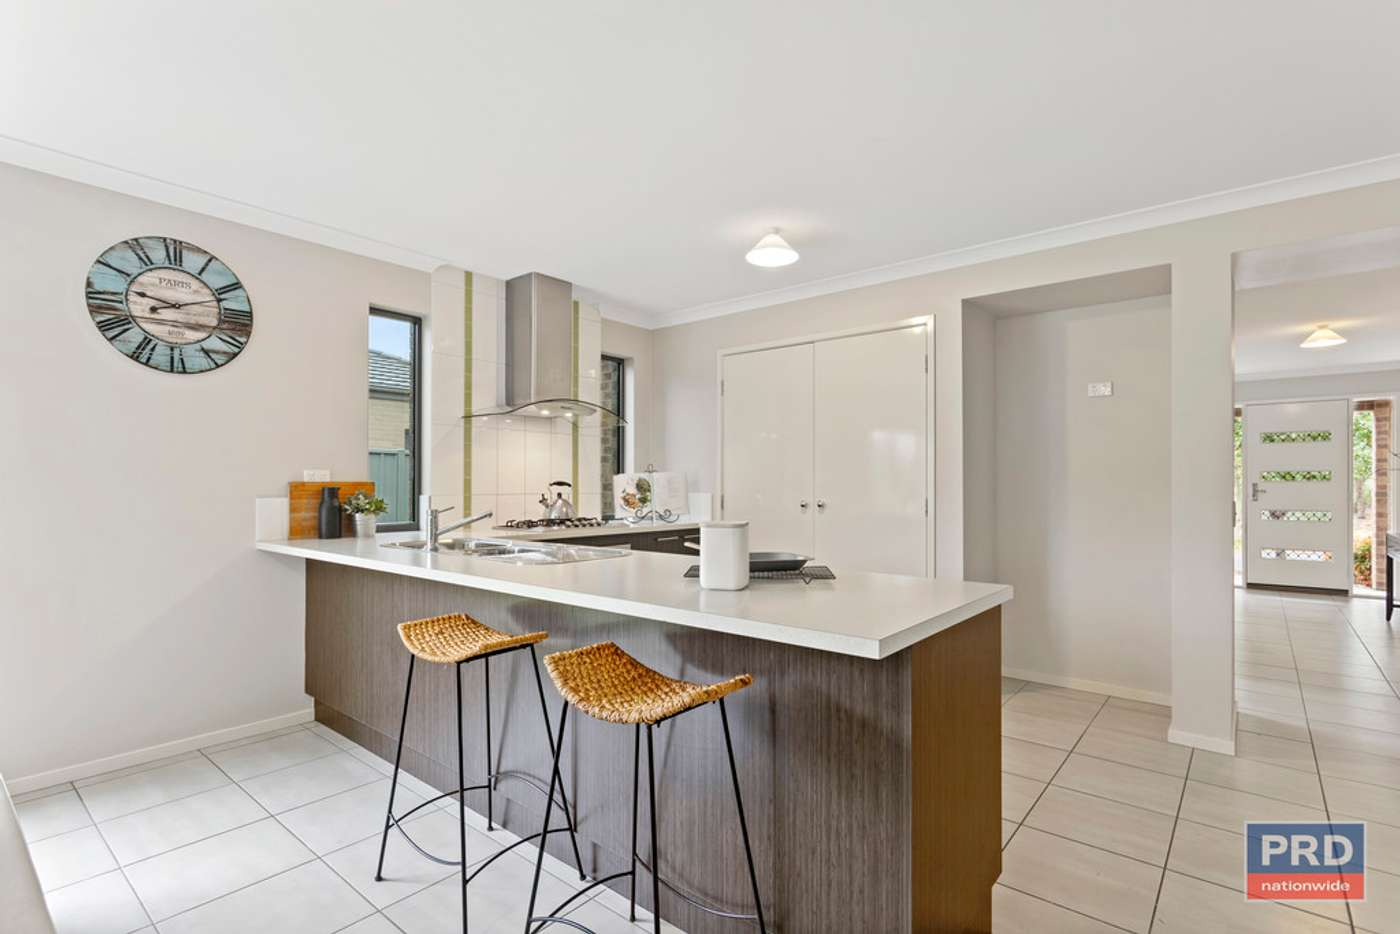 Fifth view of Homely house listing, 44 The Boulevard, White Hills VIC 3550